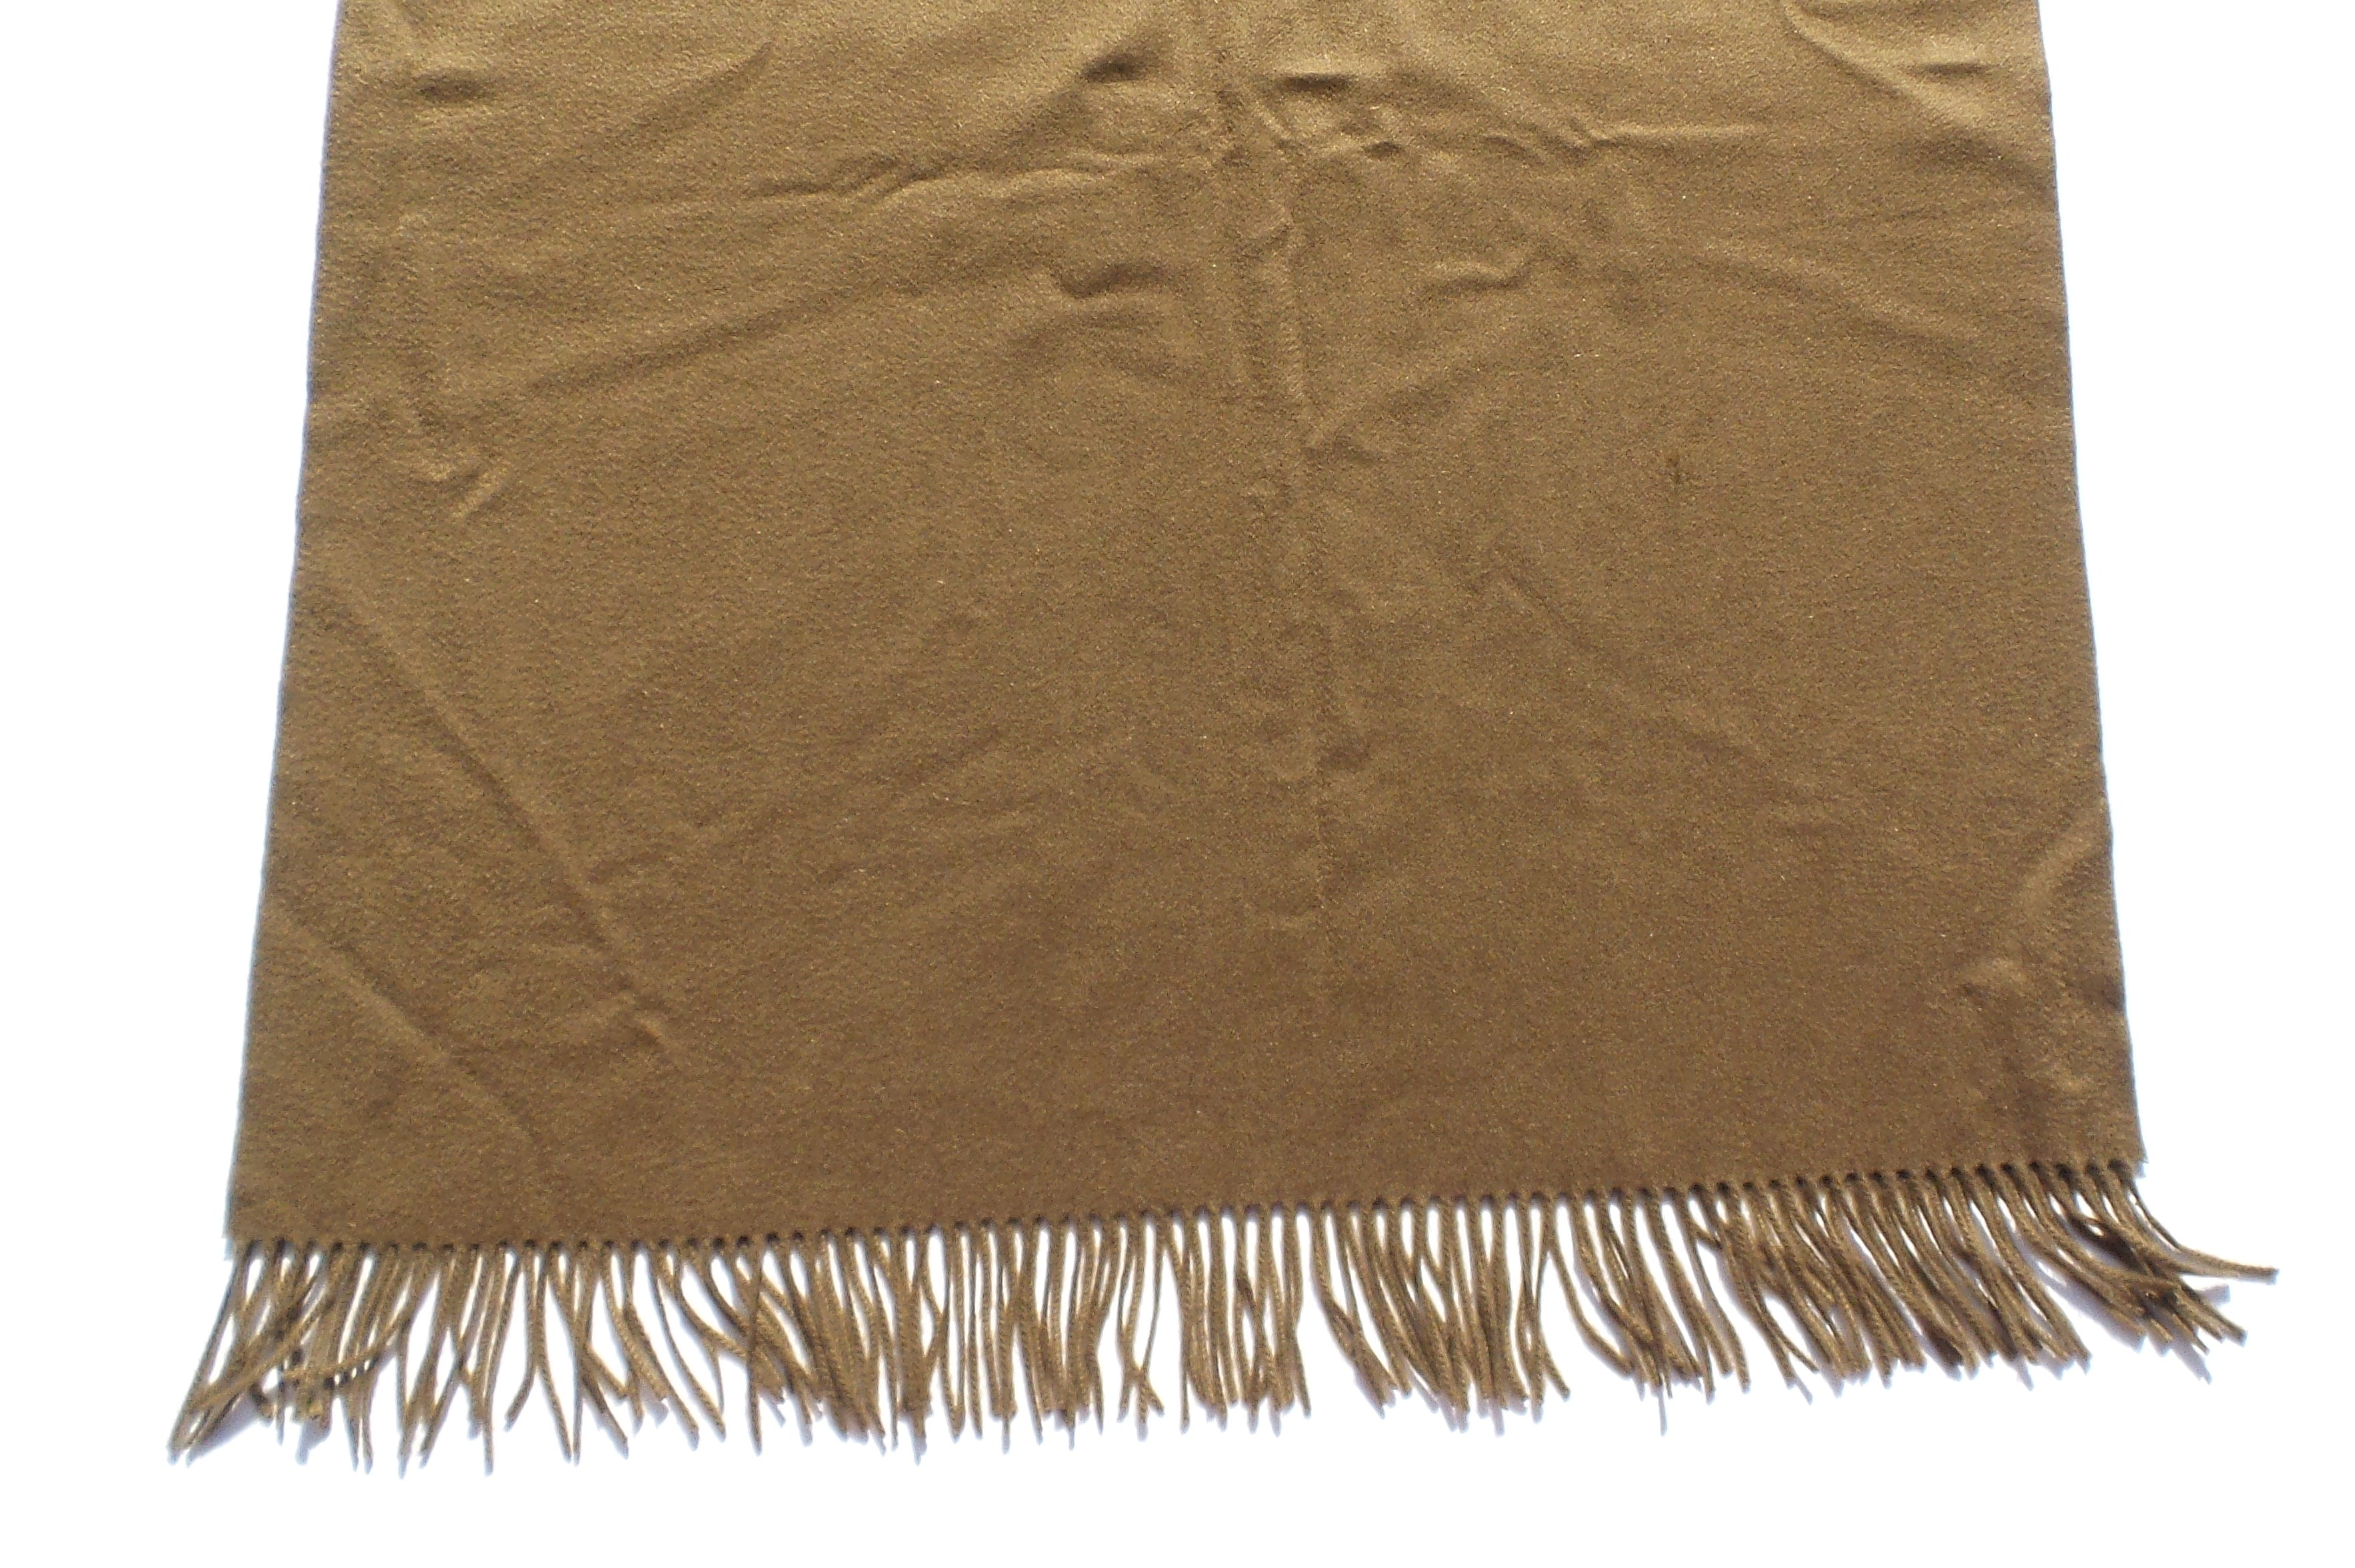 HERMES Sellier Paris Embroidered Brown Cashmere Fringe Stole Shawl Wrap